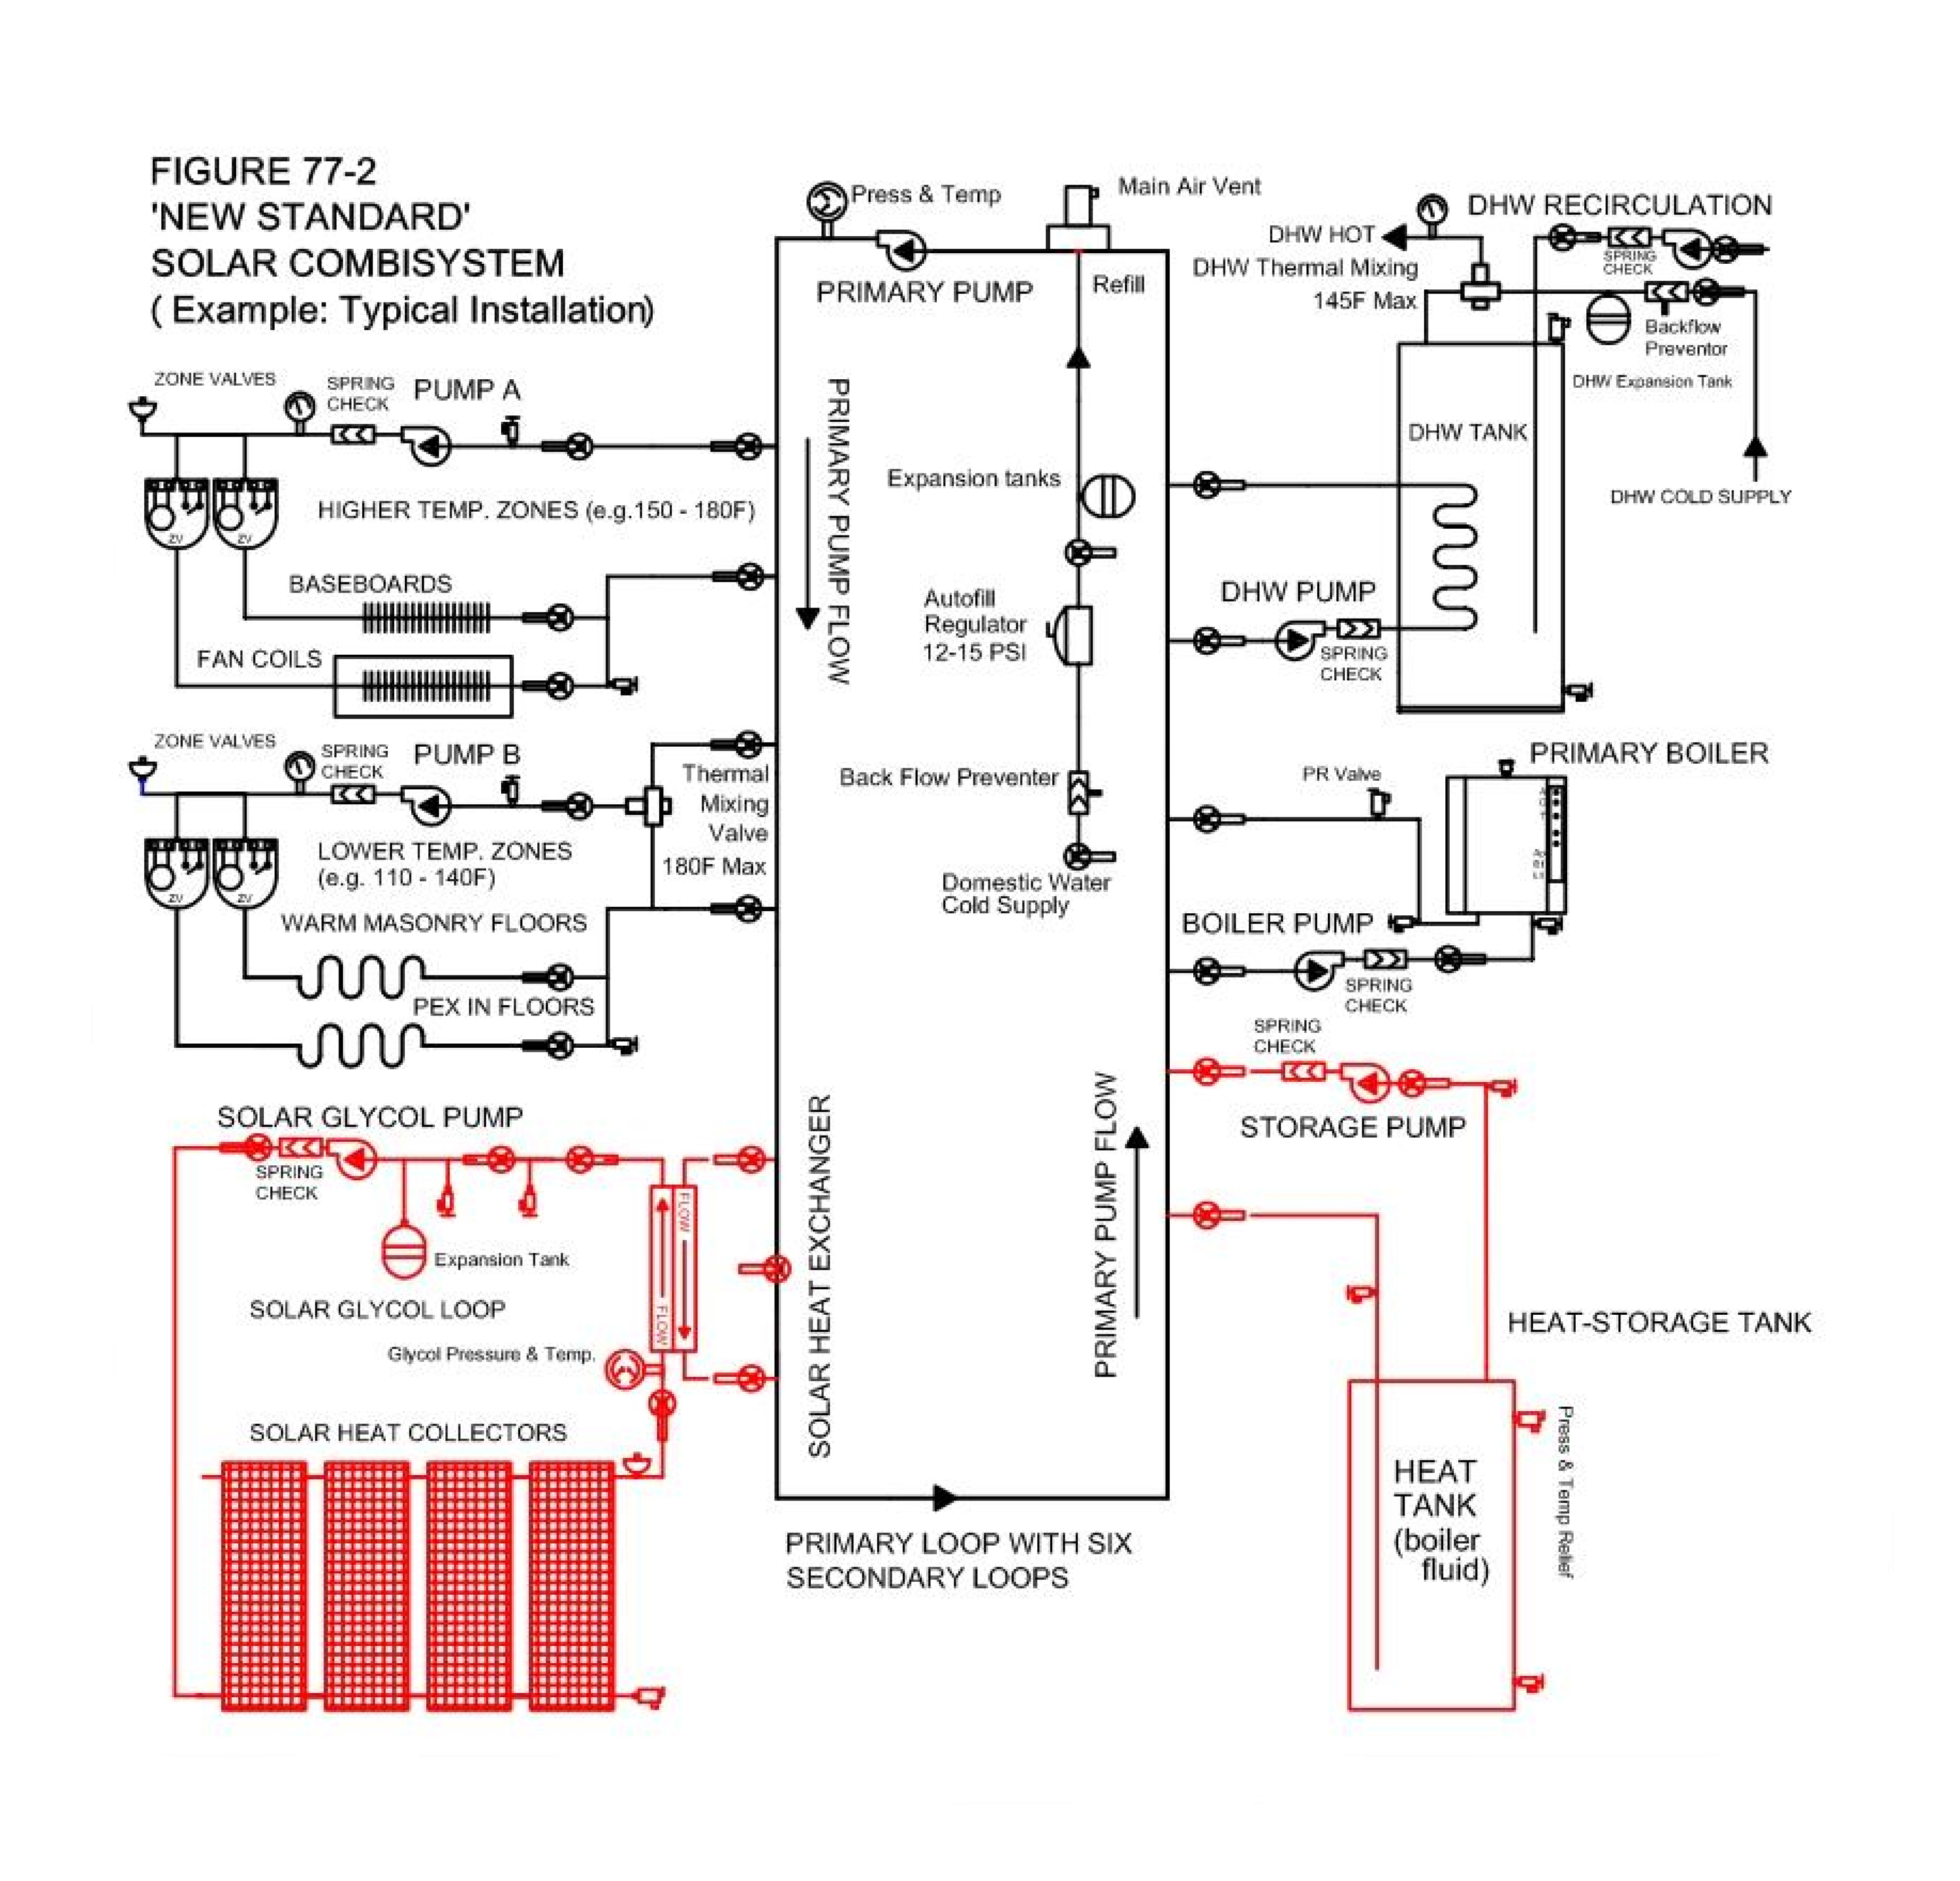 Electric Water Heater Wiring Diagram Reliant from www.phcppros.com